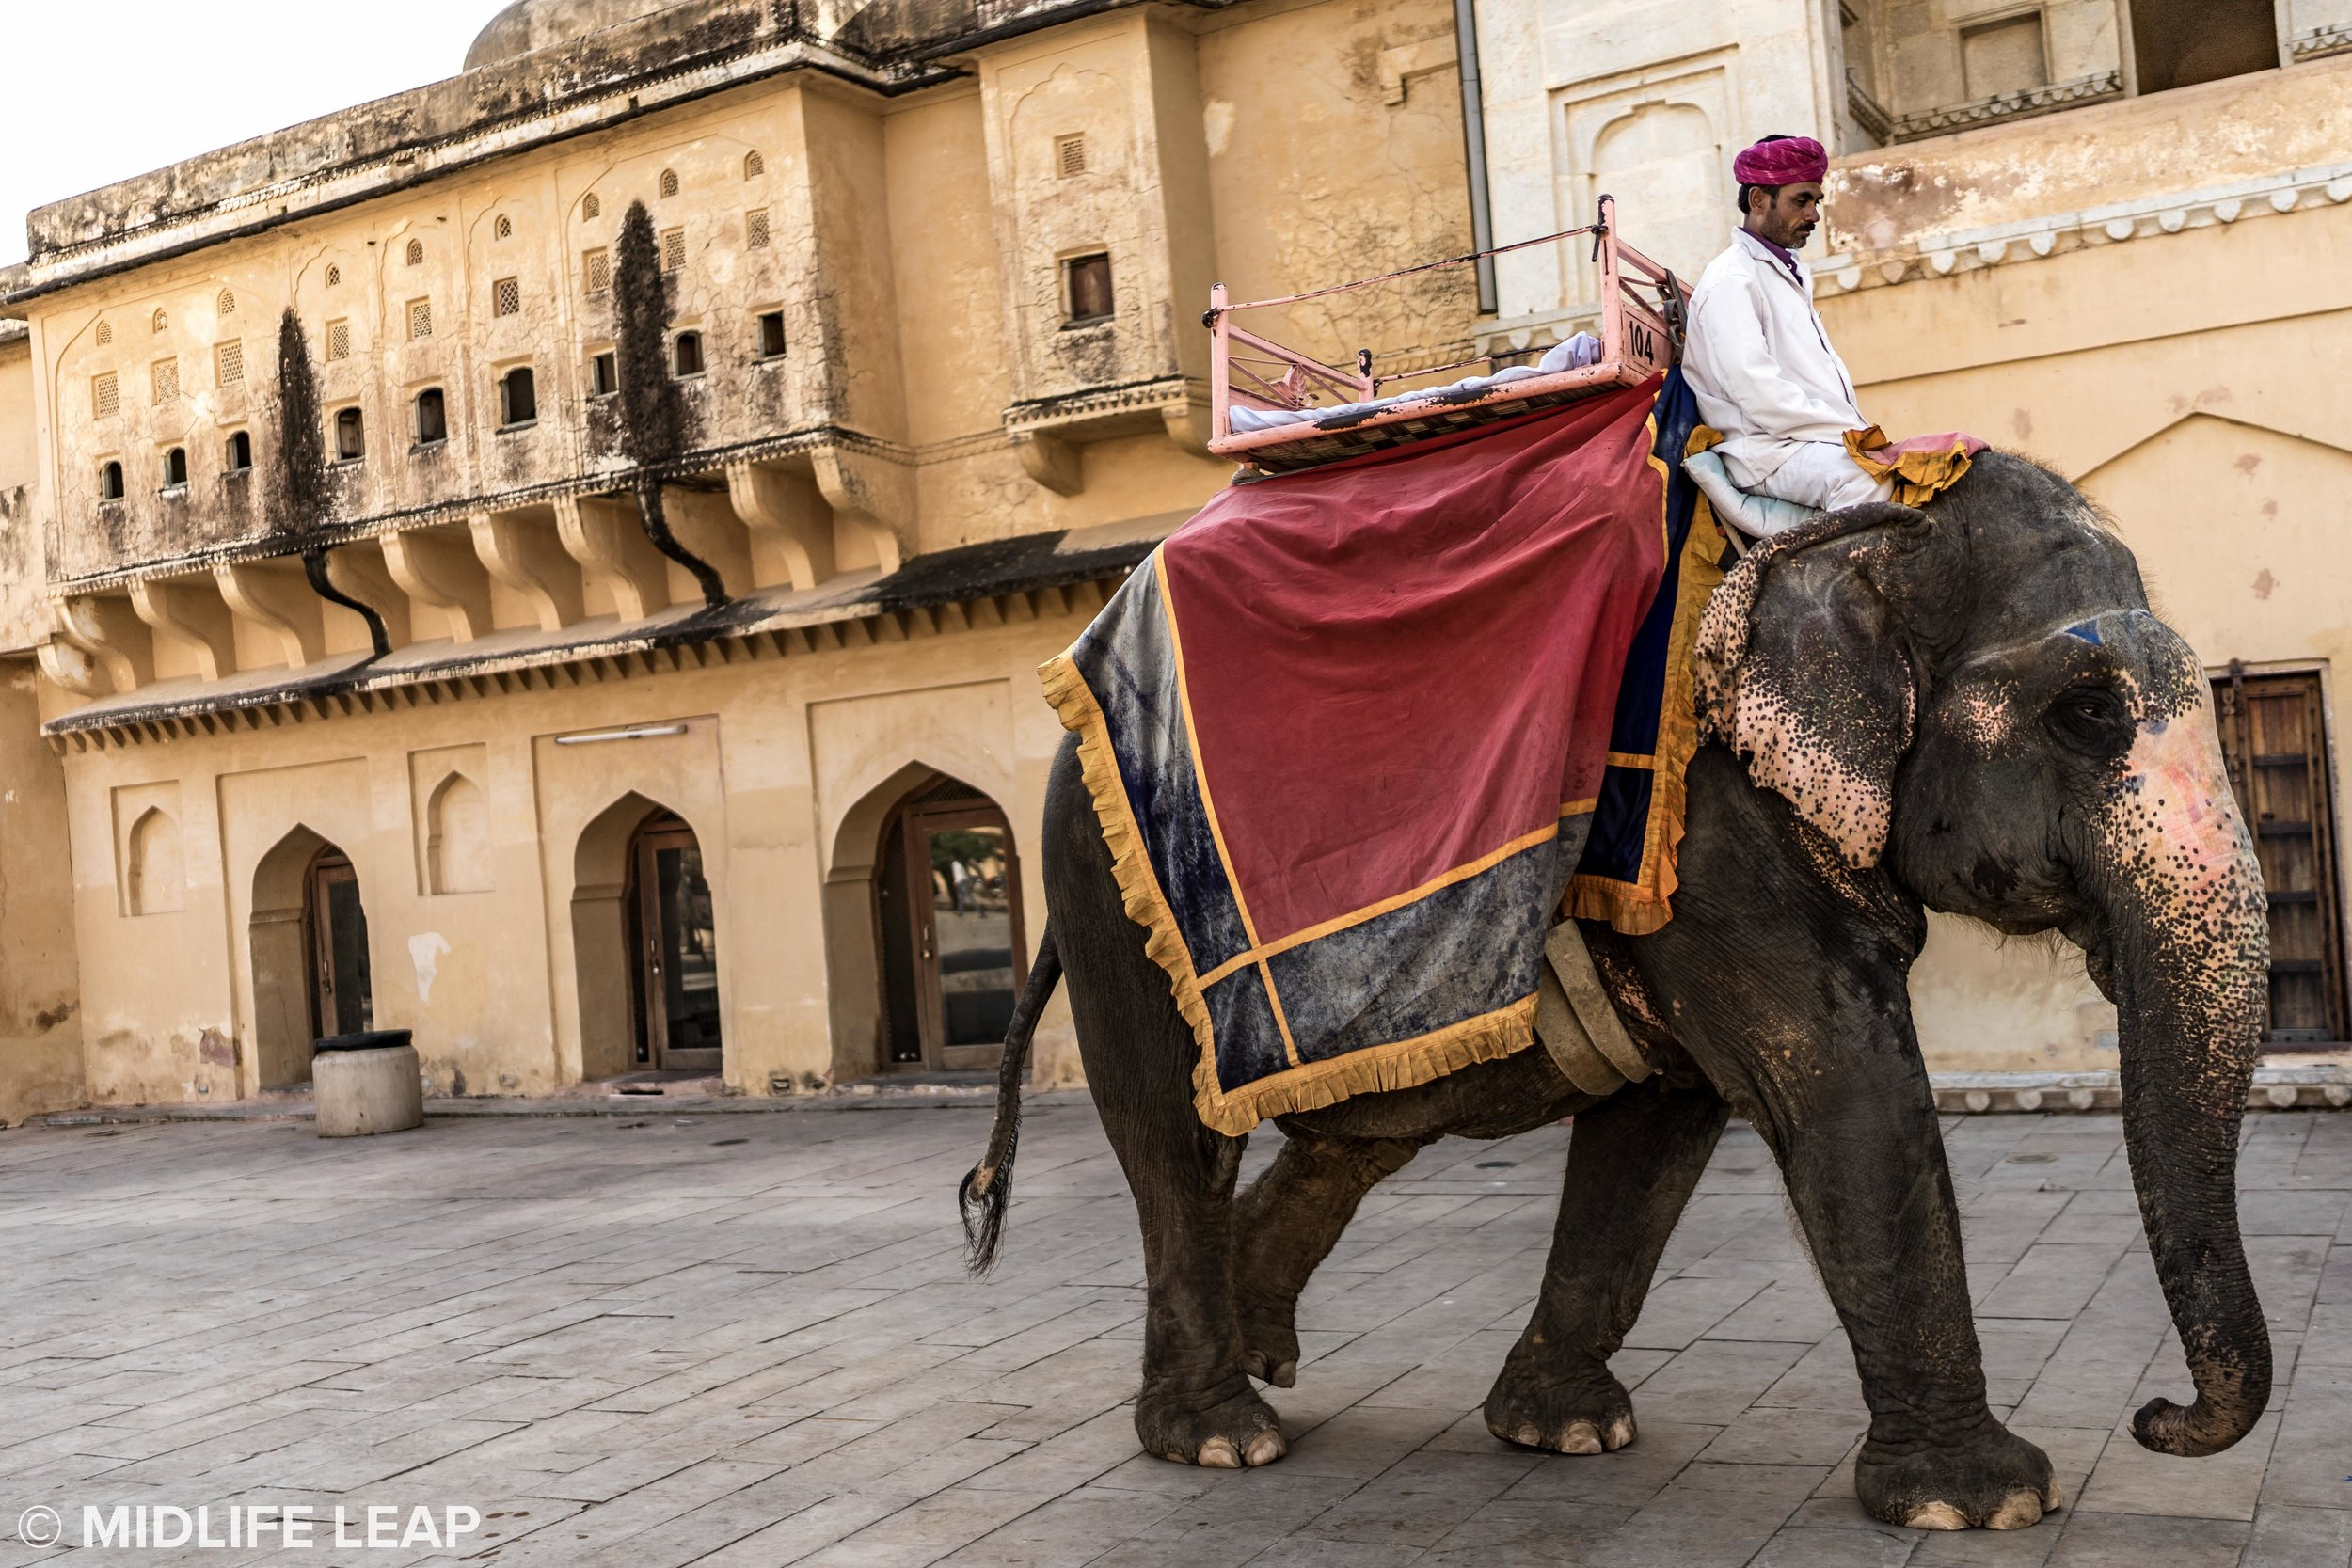 elephants-at-amber-fort-jaipur-rajasthan.jpg